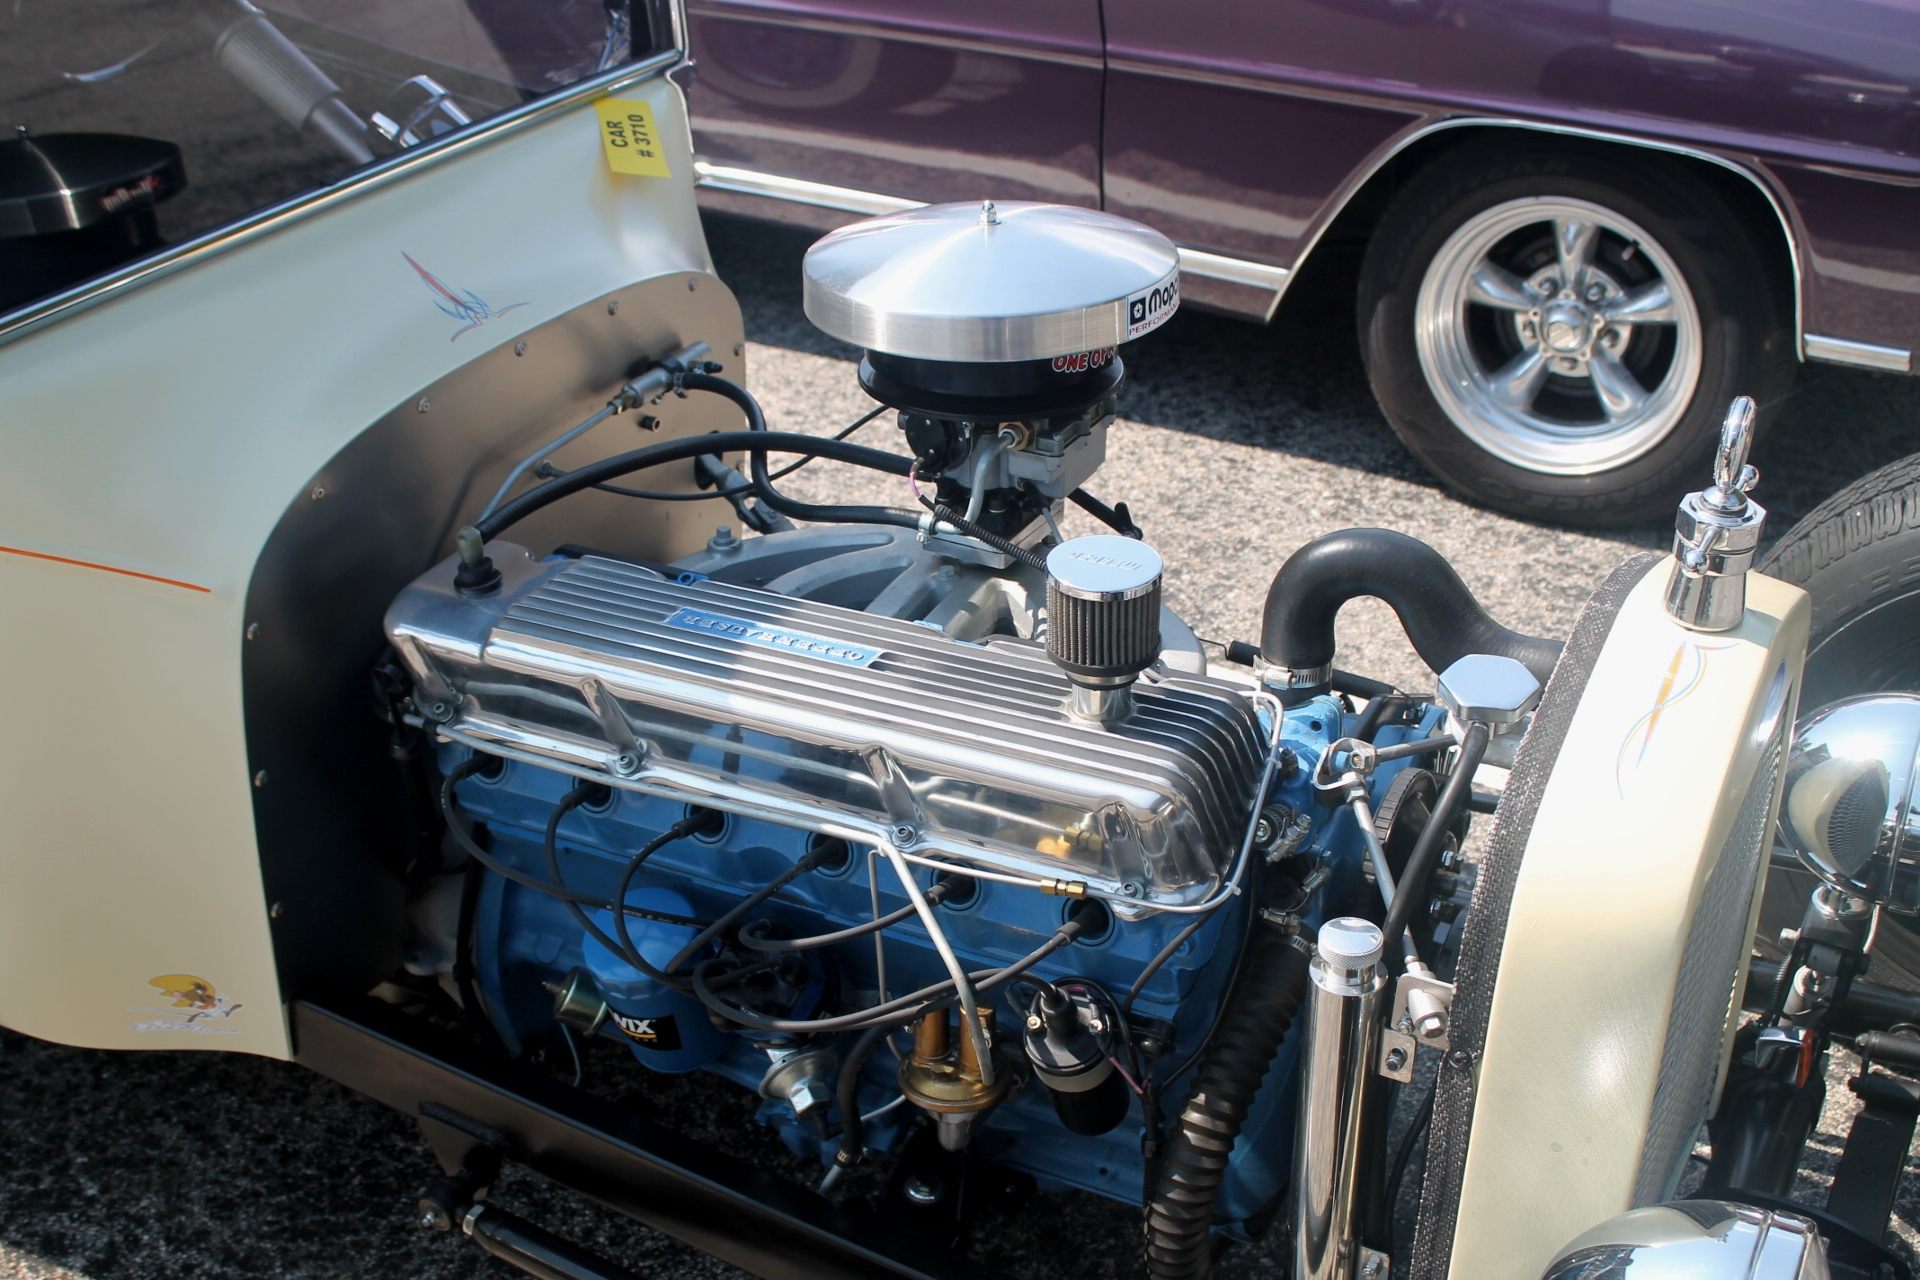 Ford Hot Rod With The Chrysler Slant Six Engine |